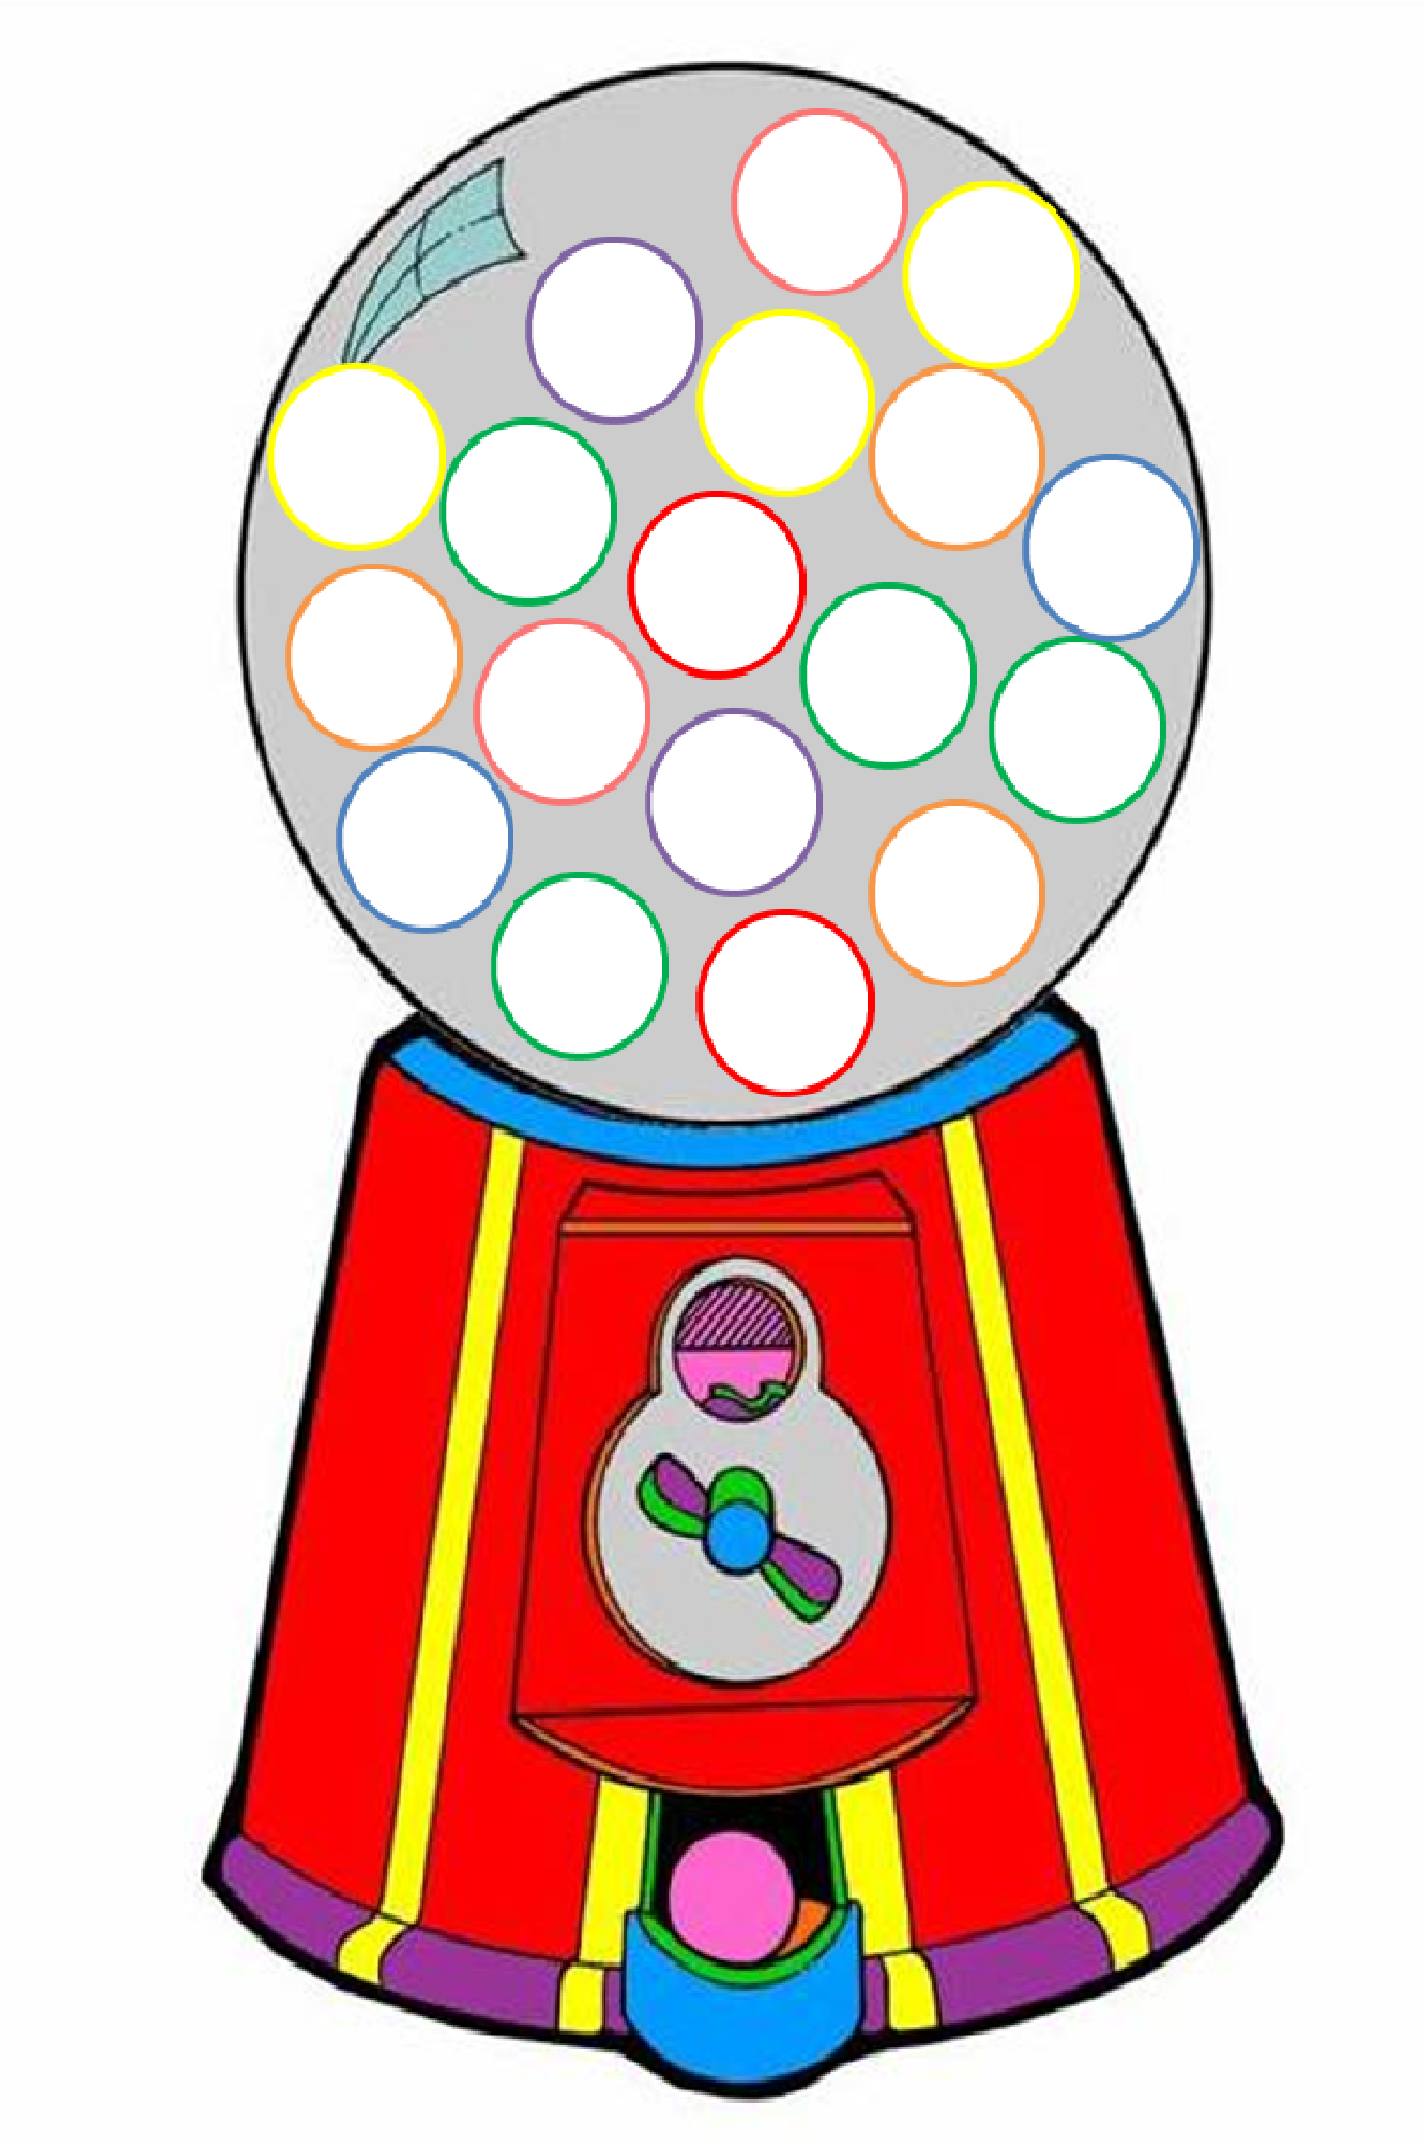 Gumball machine clipart. Free cliparts download clip